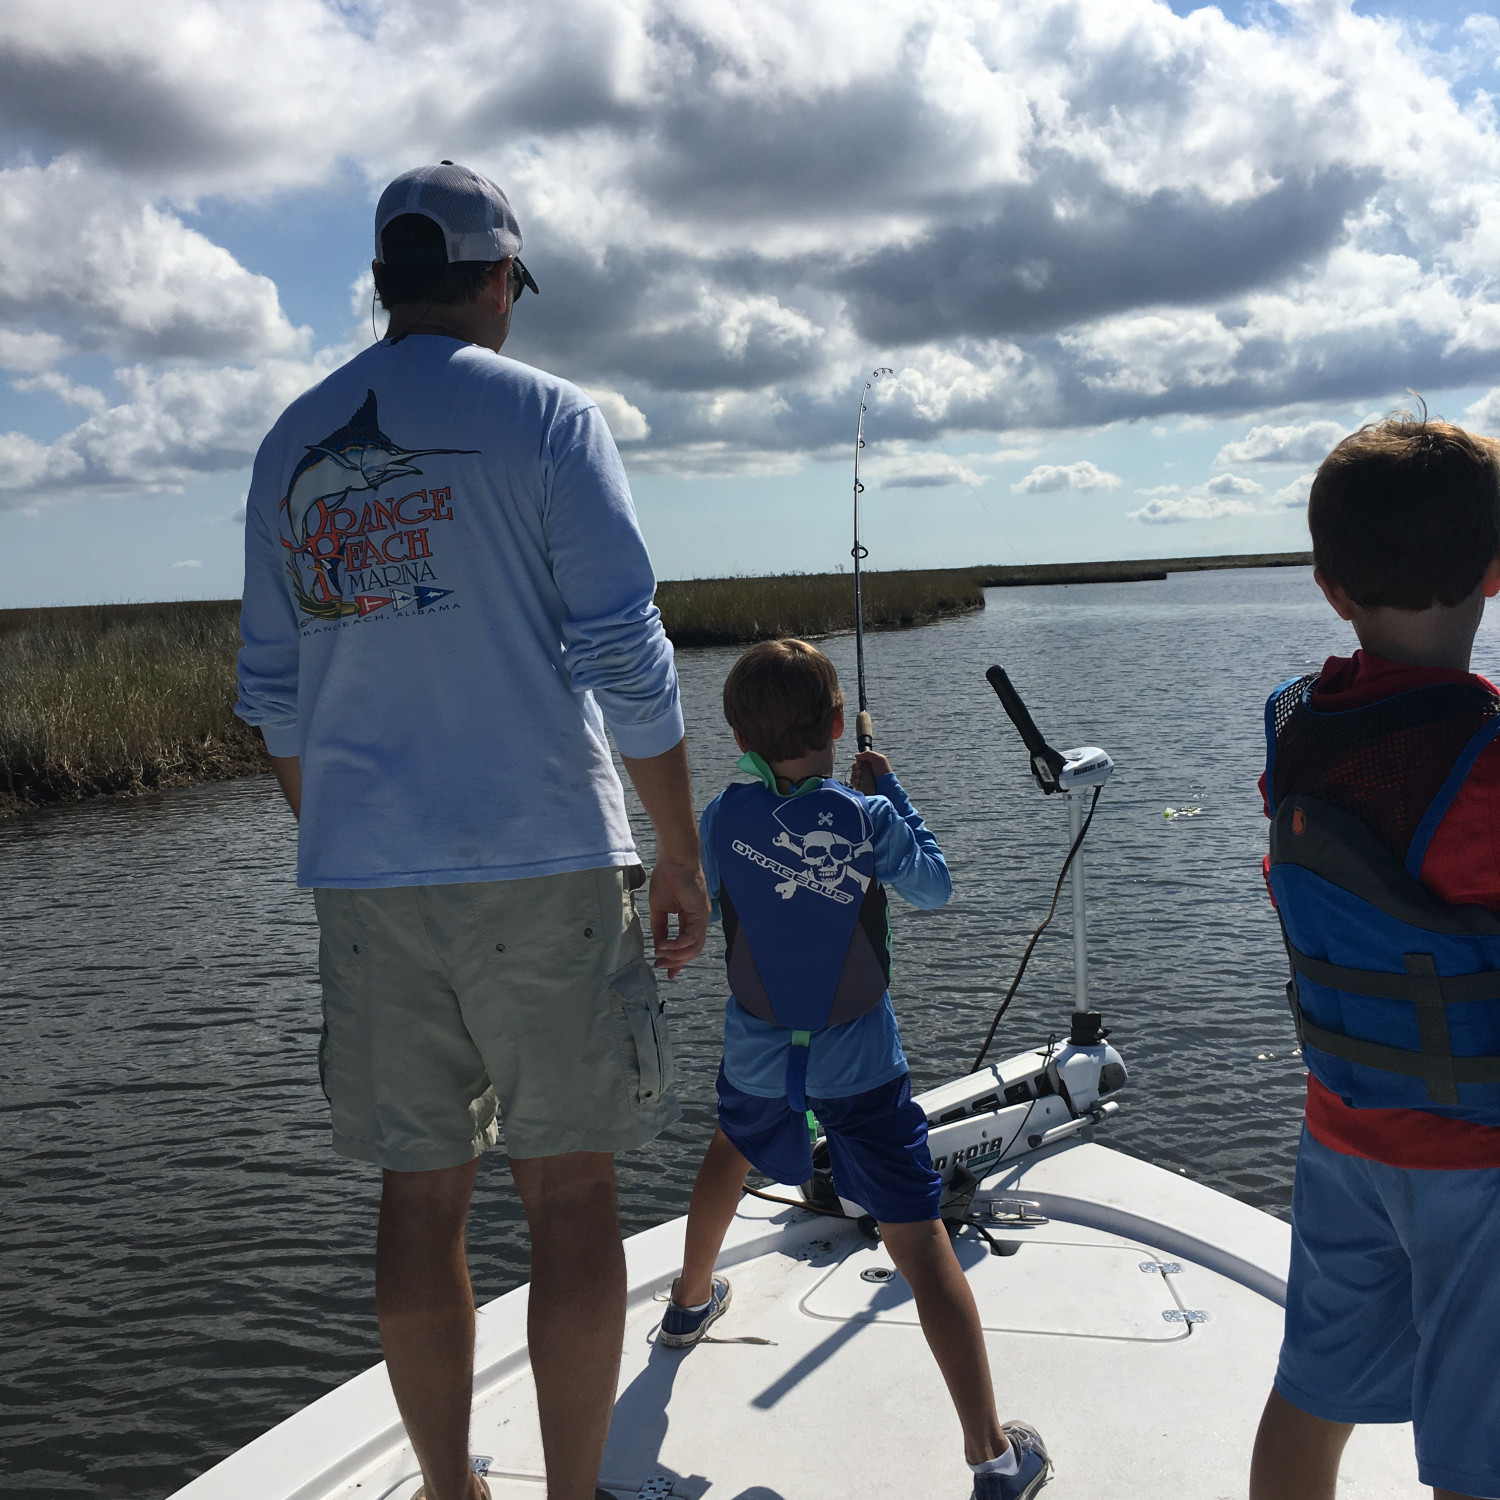 Title: Hooked Up! - On board their Sportsman Tournament 214 Bay Boat - Location: Breton Sound Louisiana. Participating in the Photo Contest #SportsmanApril2018